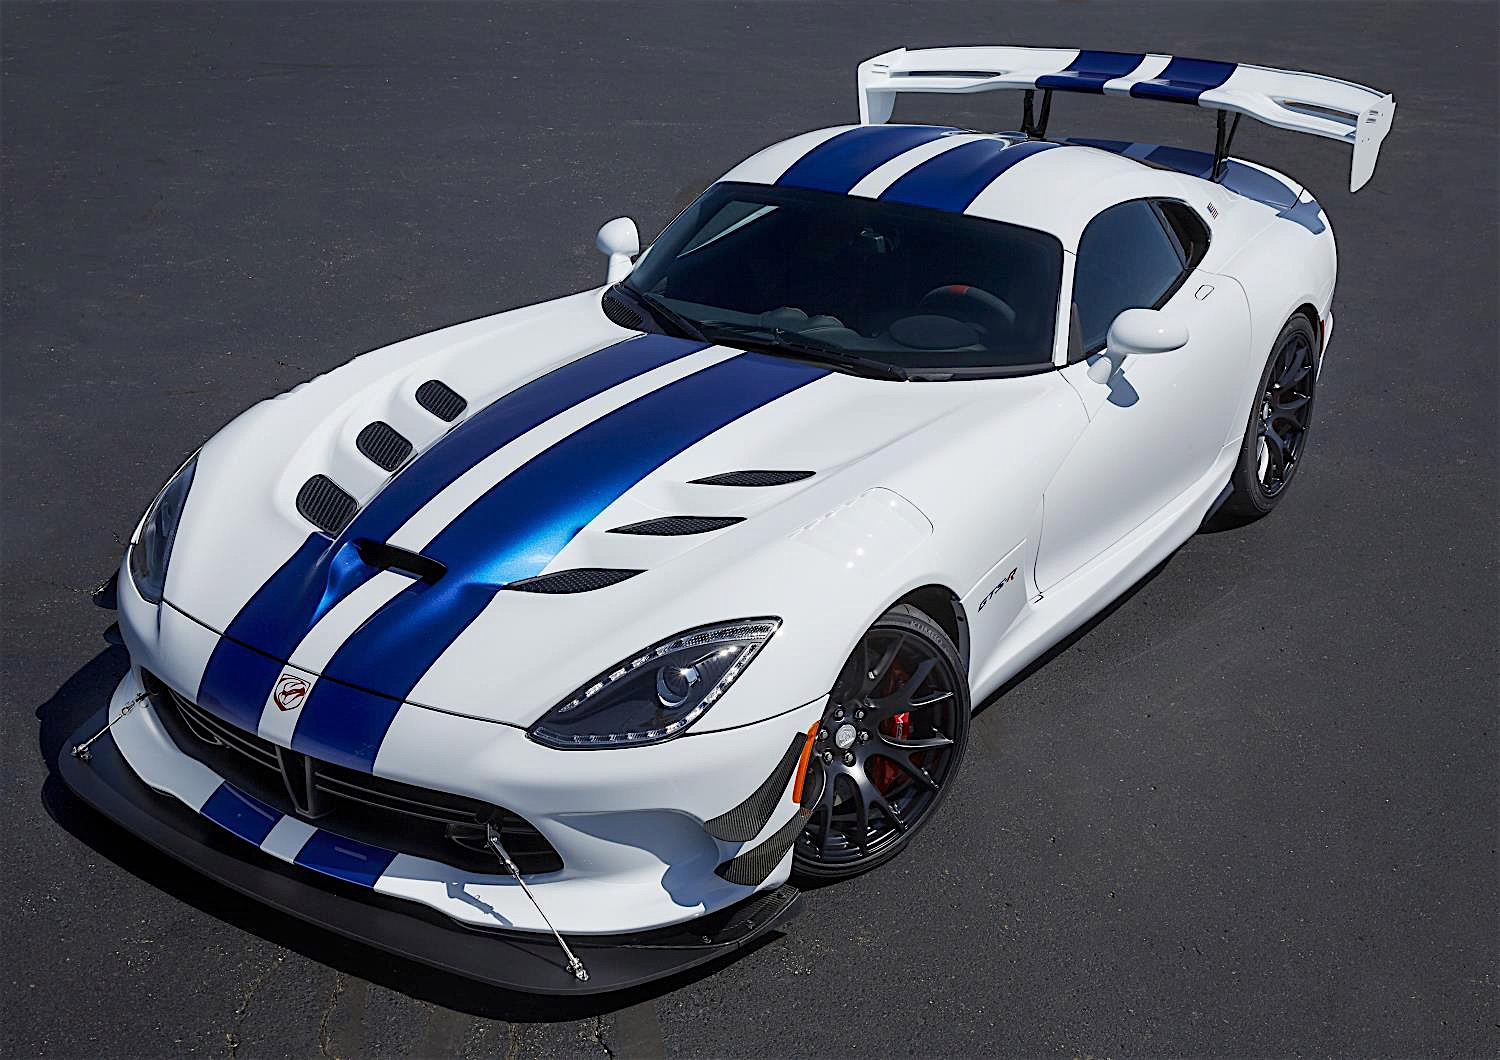 dodge viper for sale the ultimate guide american supercars rh americansupercars com 2018 Dodge Viper 2015 Dodge Viper